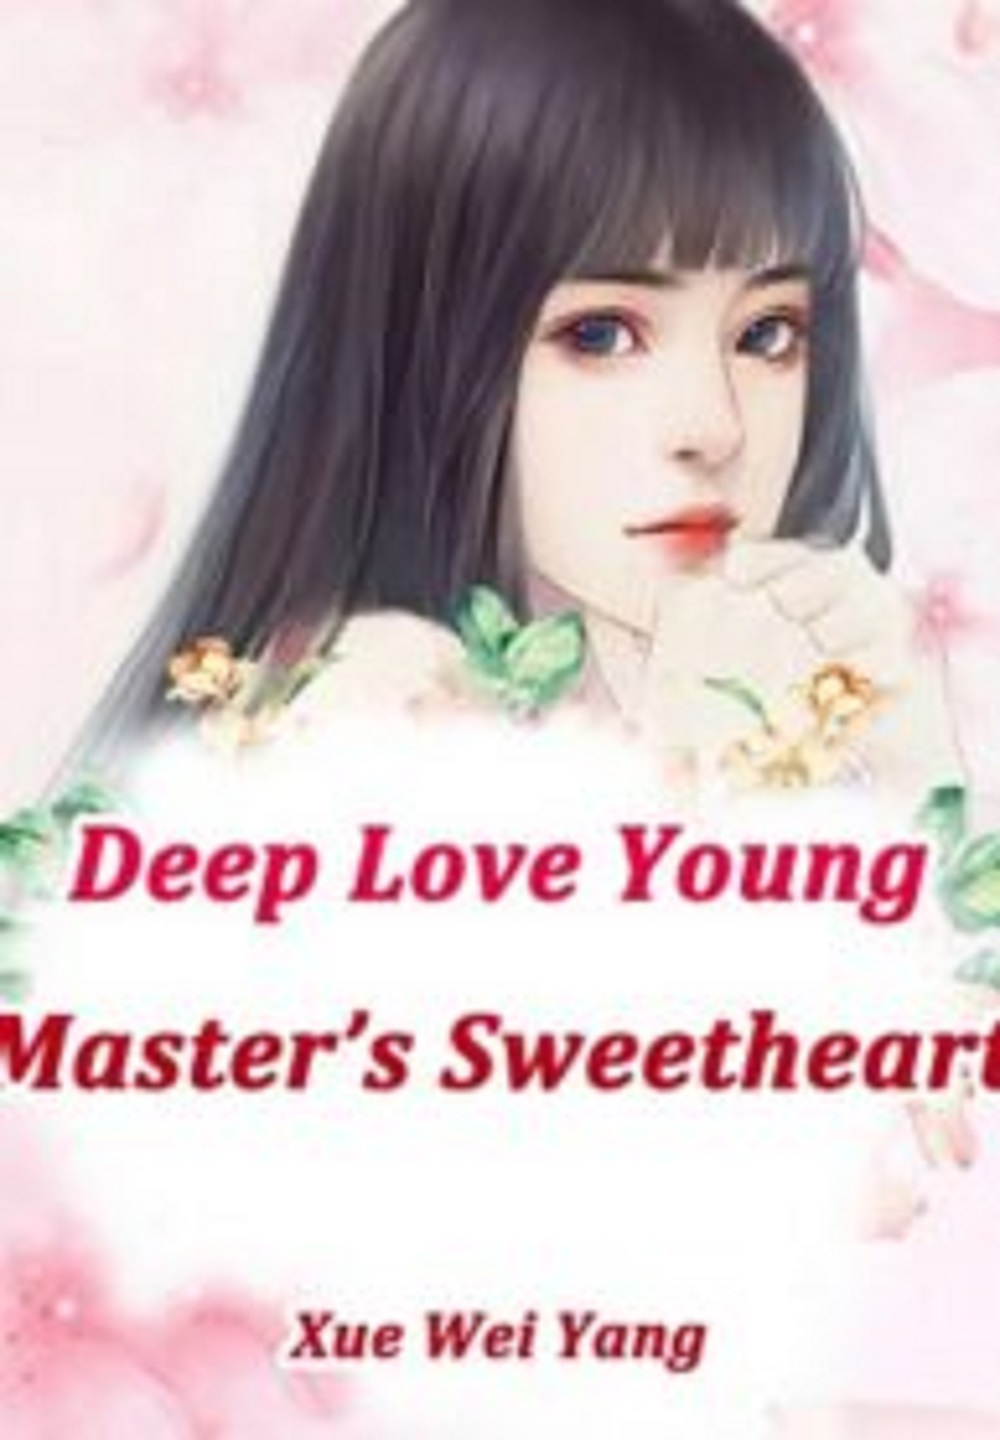 Deep Love: Young Master's Sweetheart Novel Chapter 13 To 14 PDF